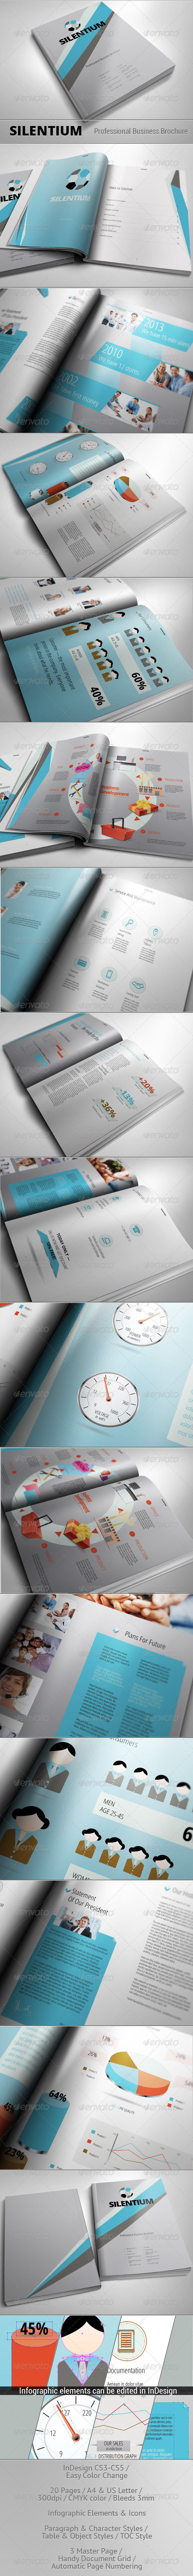 GraphicRiver SILENTIUM Modern Business Brochure 3261115